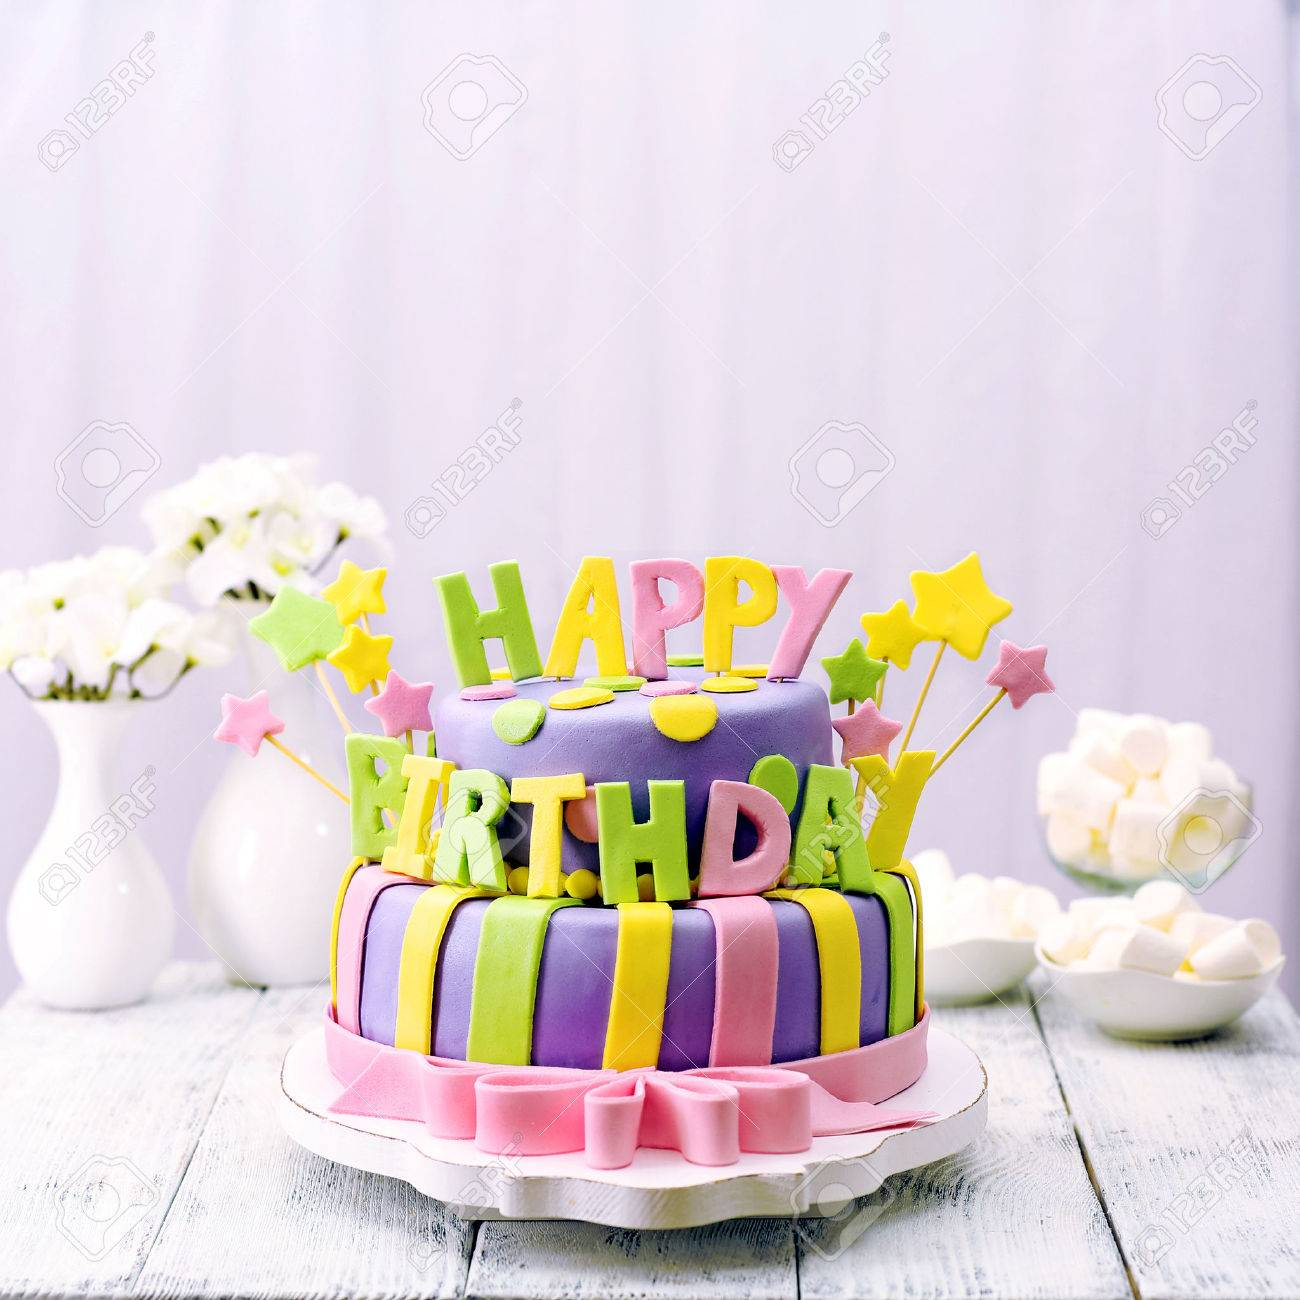 Groovy Delicious Birthday Cake On Table Stock Photo Picture And Royalty Funny Birthday Cards Online Overcheapnameinfo